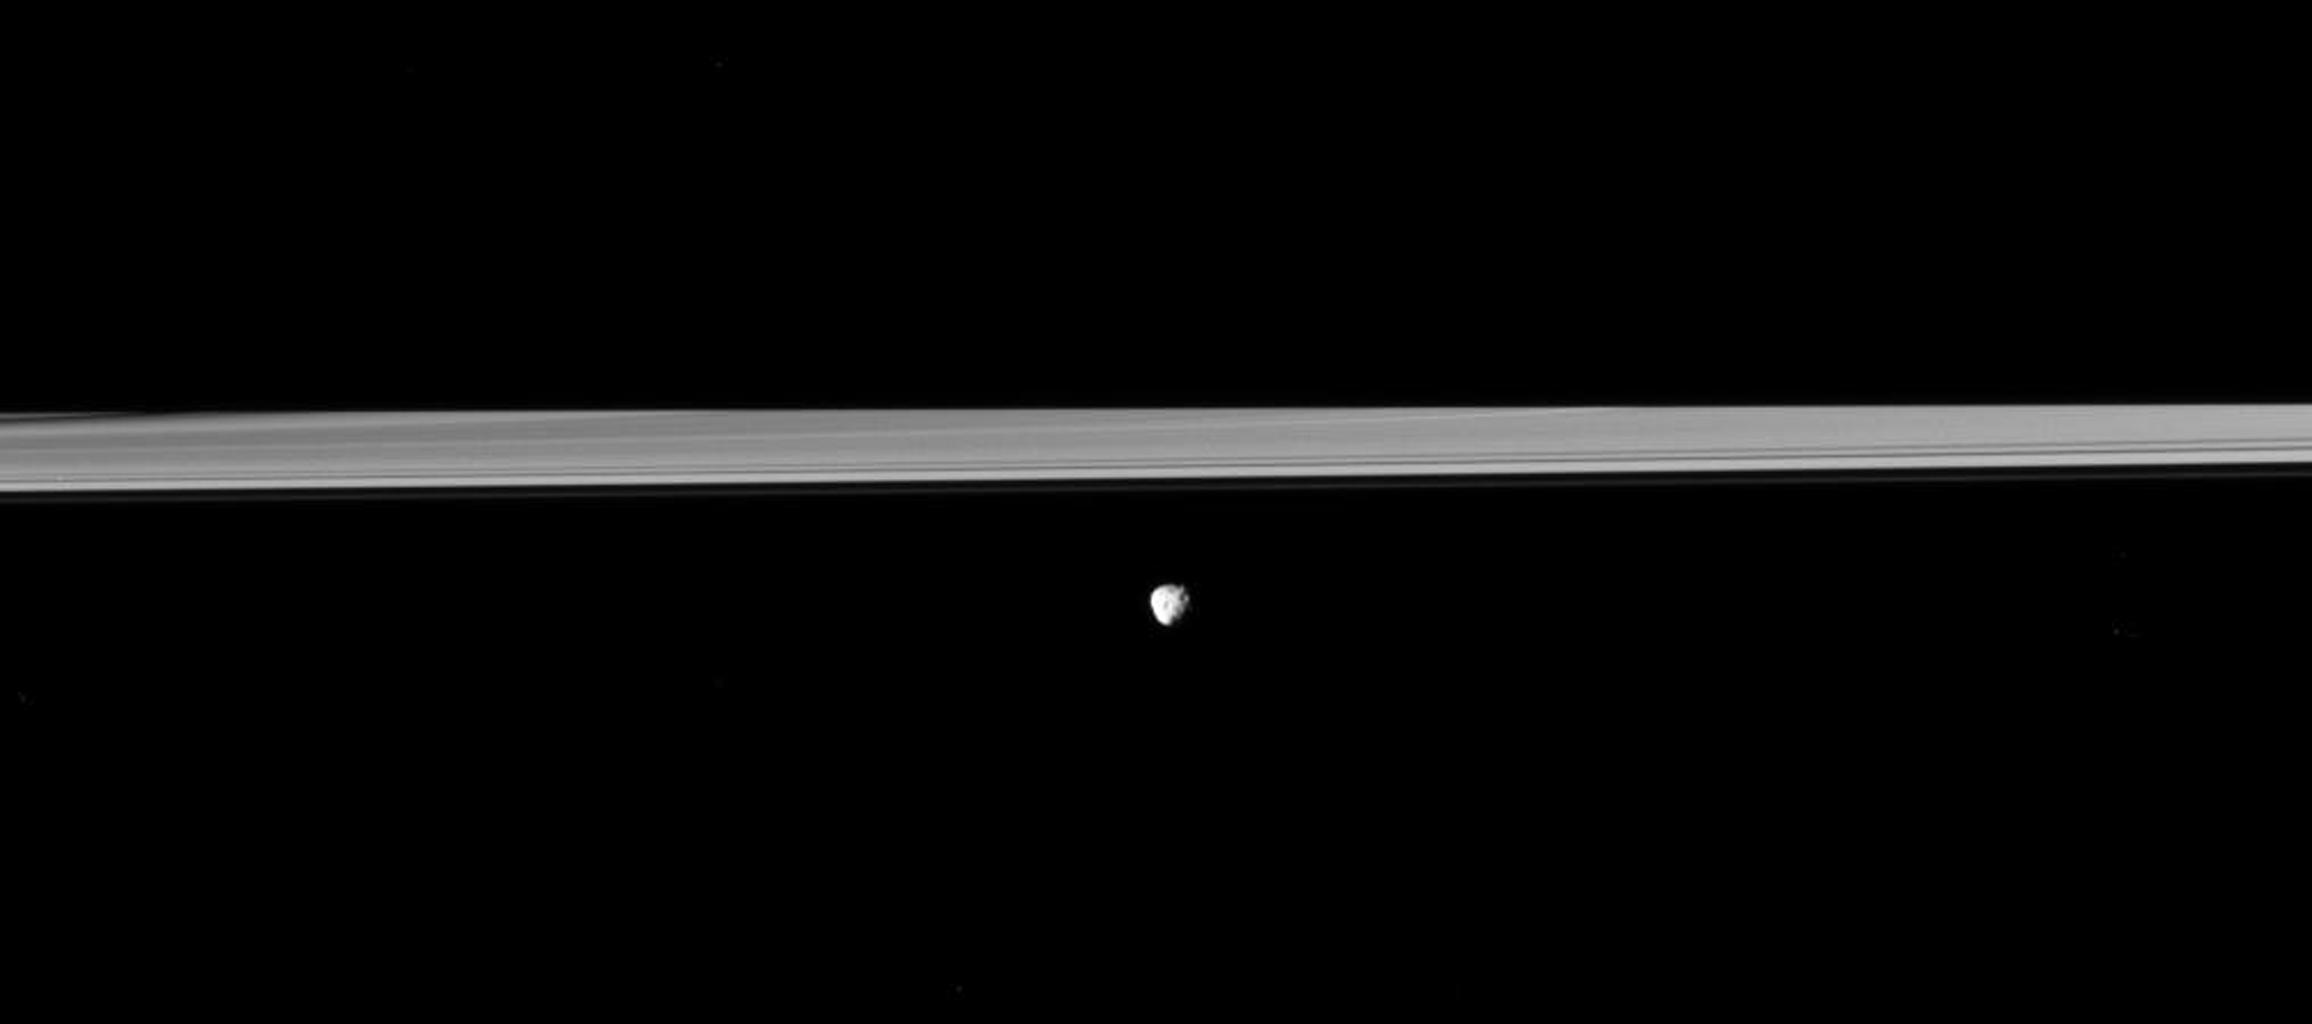 Saturn's moon Janus orbits in front of the rings, which are partially darkened by the shadow of the planet in viwe from NASA's Cassini spacecraft. Saturn's shadow obscures about half the rings.